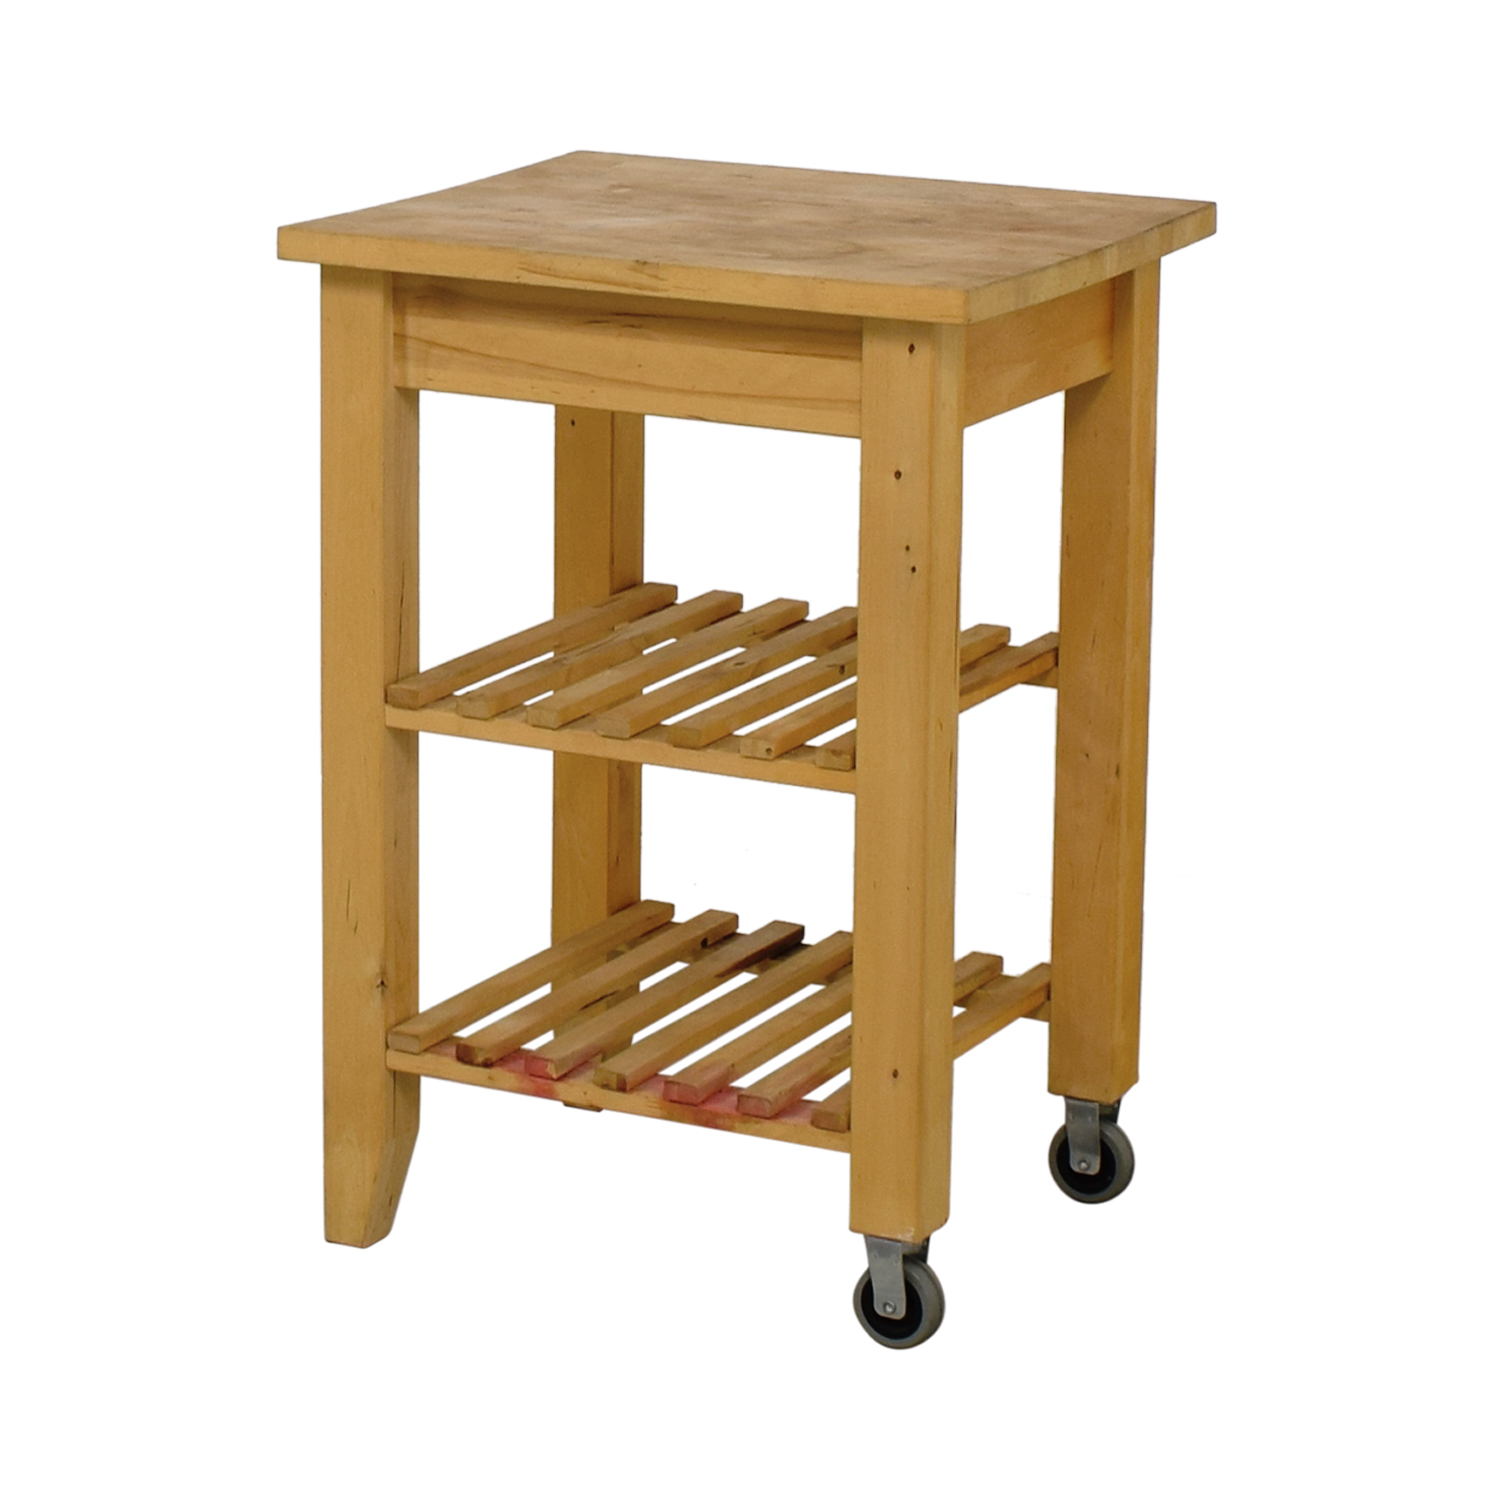 Ikea Tables Kitchen: IKEA IKEA Butcher Block Kitchen Cart With